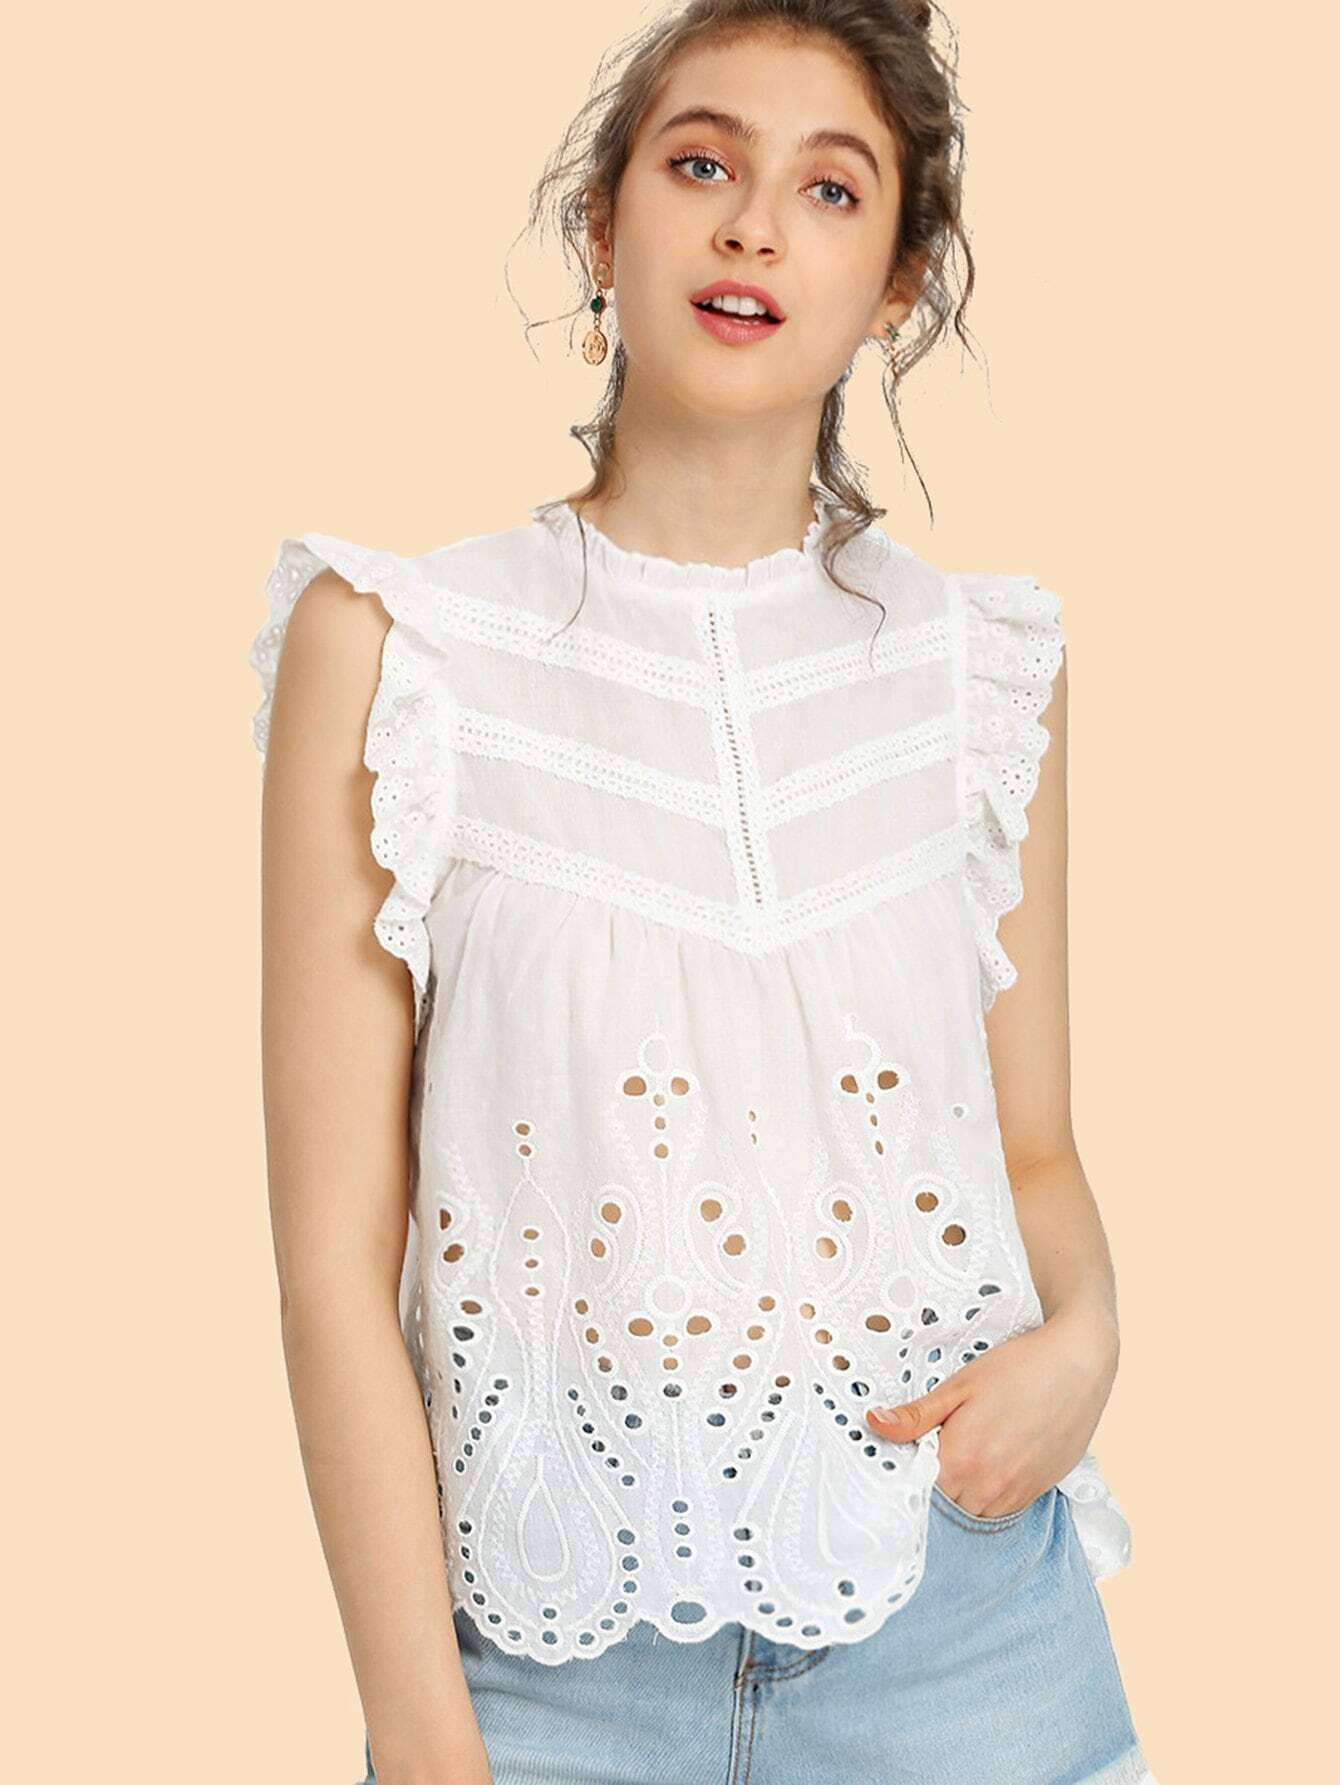 Ruffle Trim Eyelet Embroidered Top mock neck eyelet embroidered ruffle top